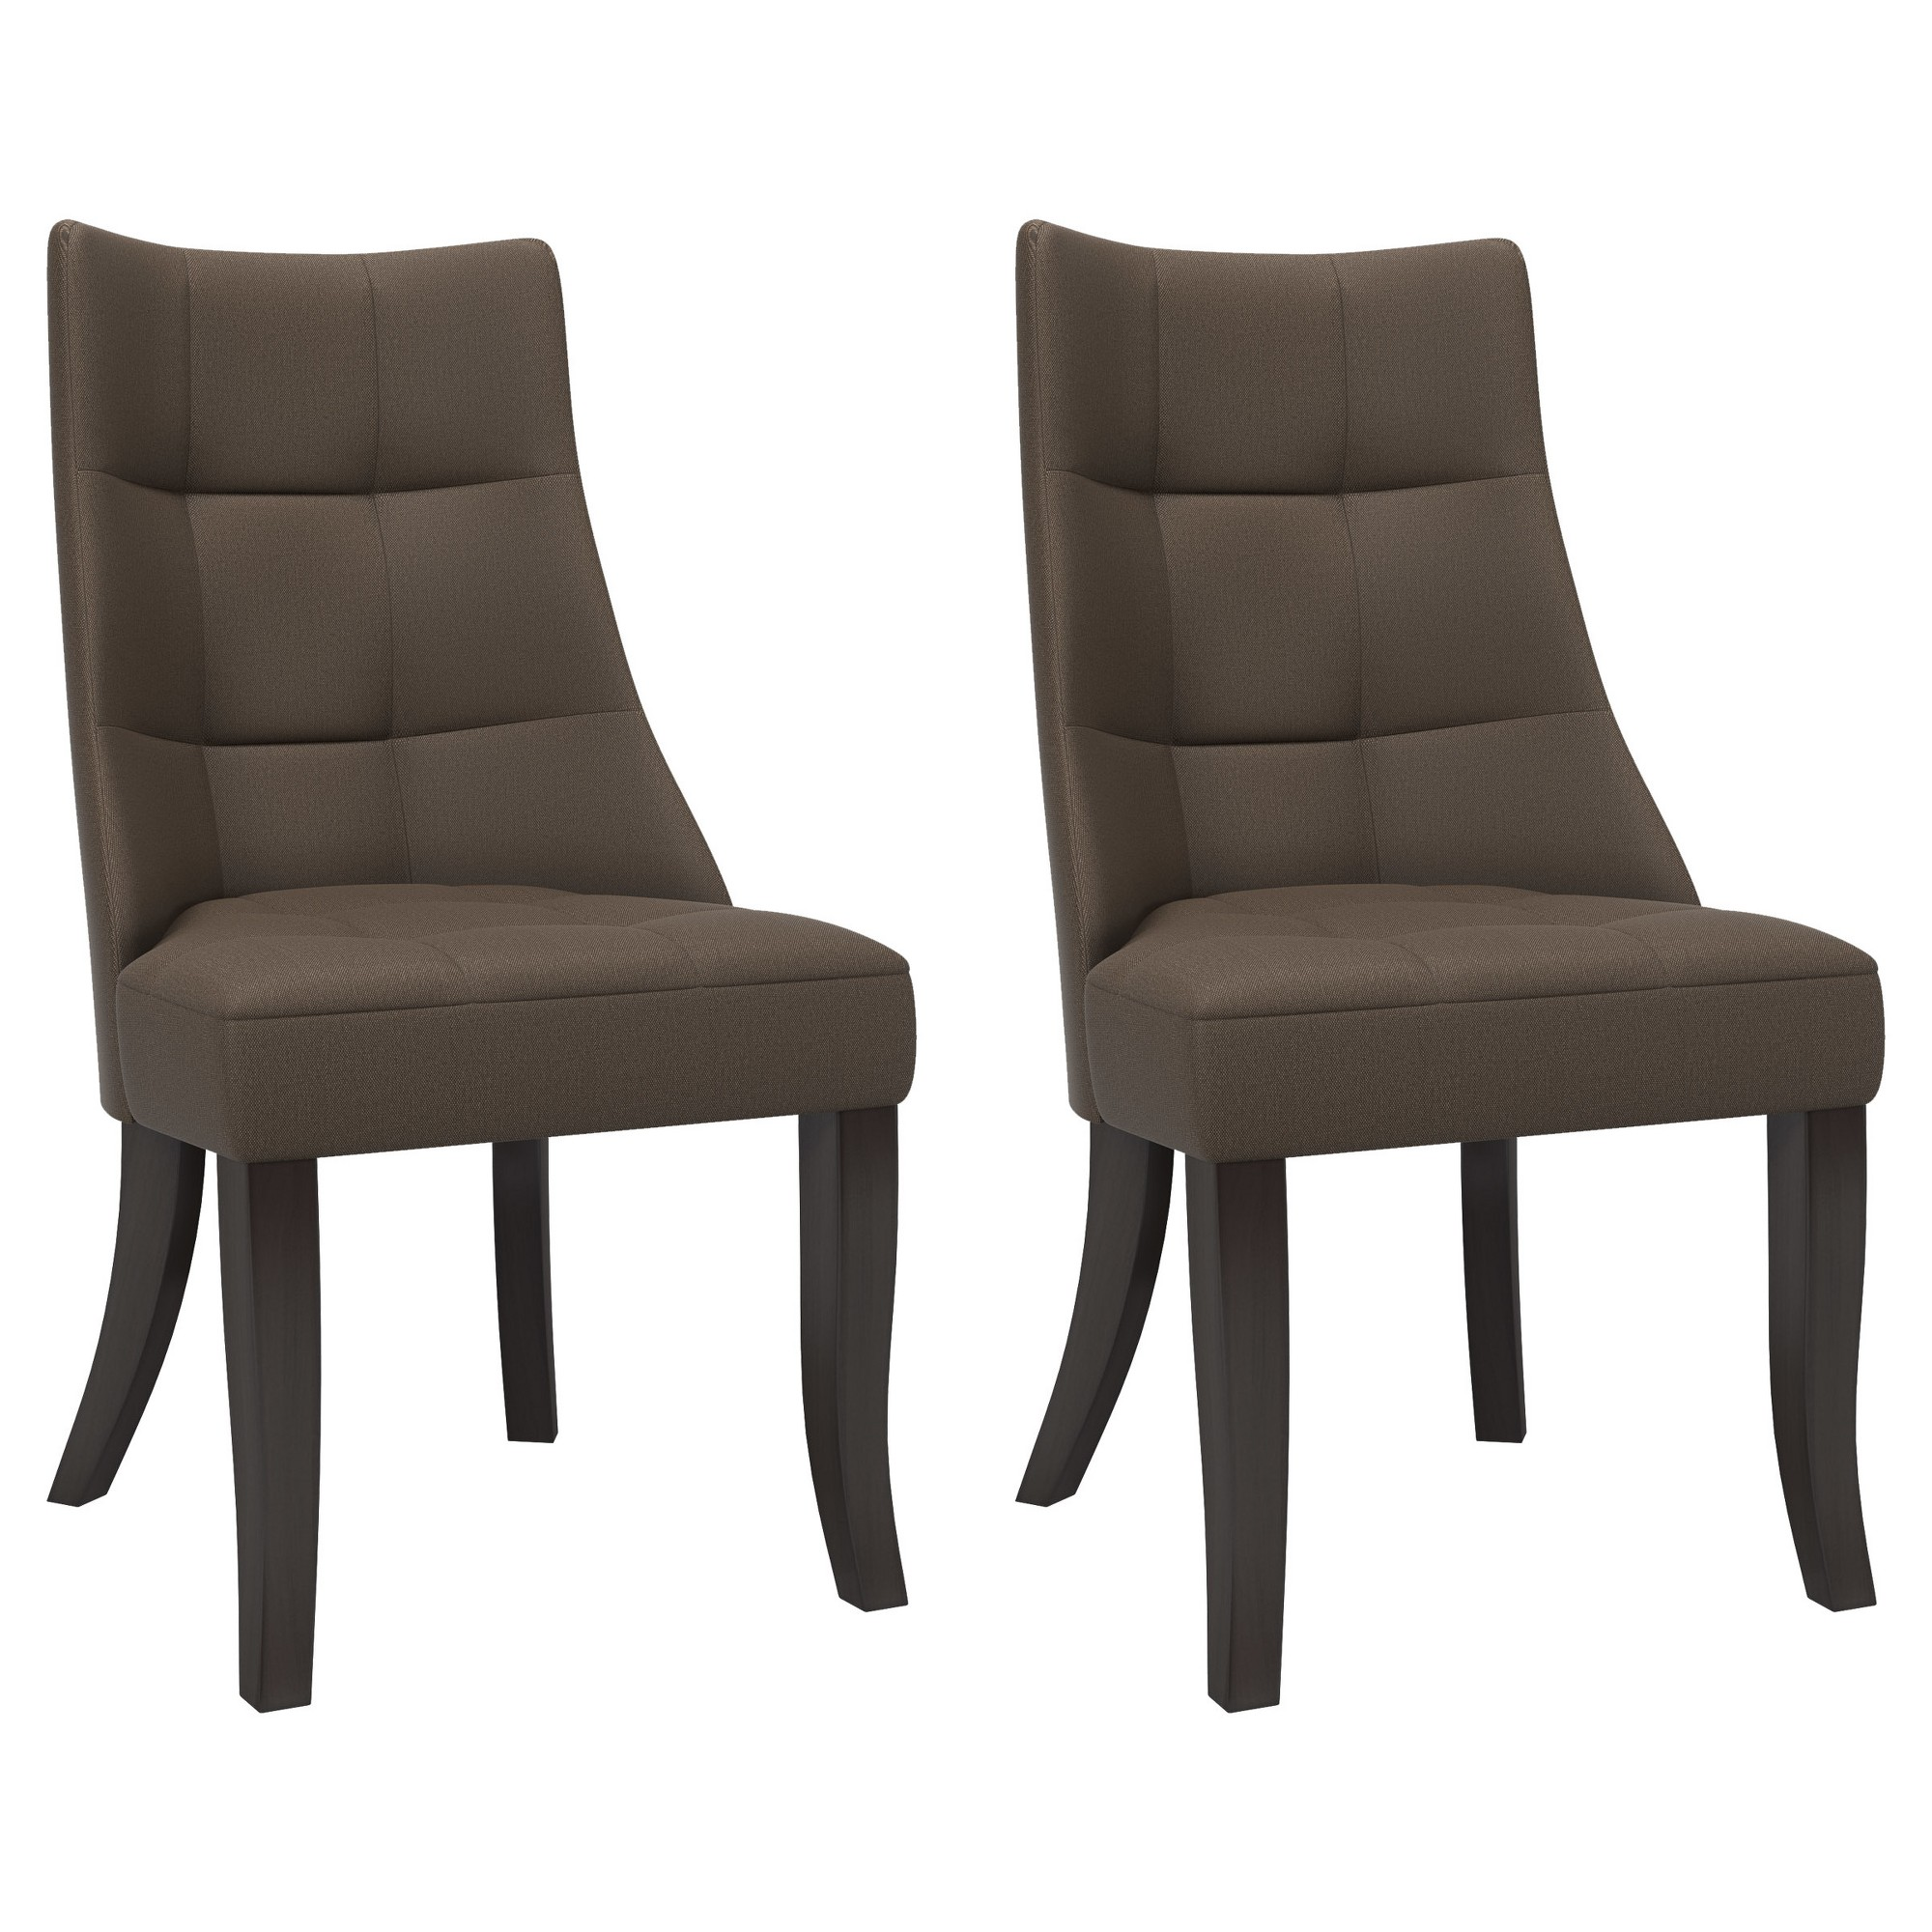 Tufted Dining Accent Chair Brown/Gray (Set of 2